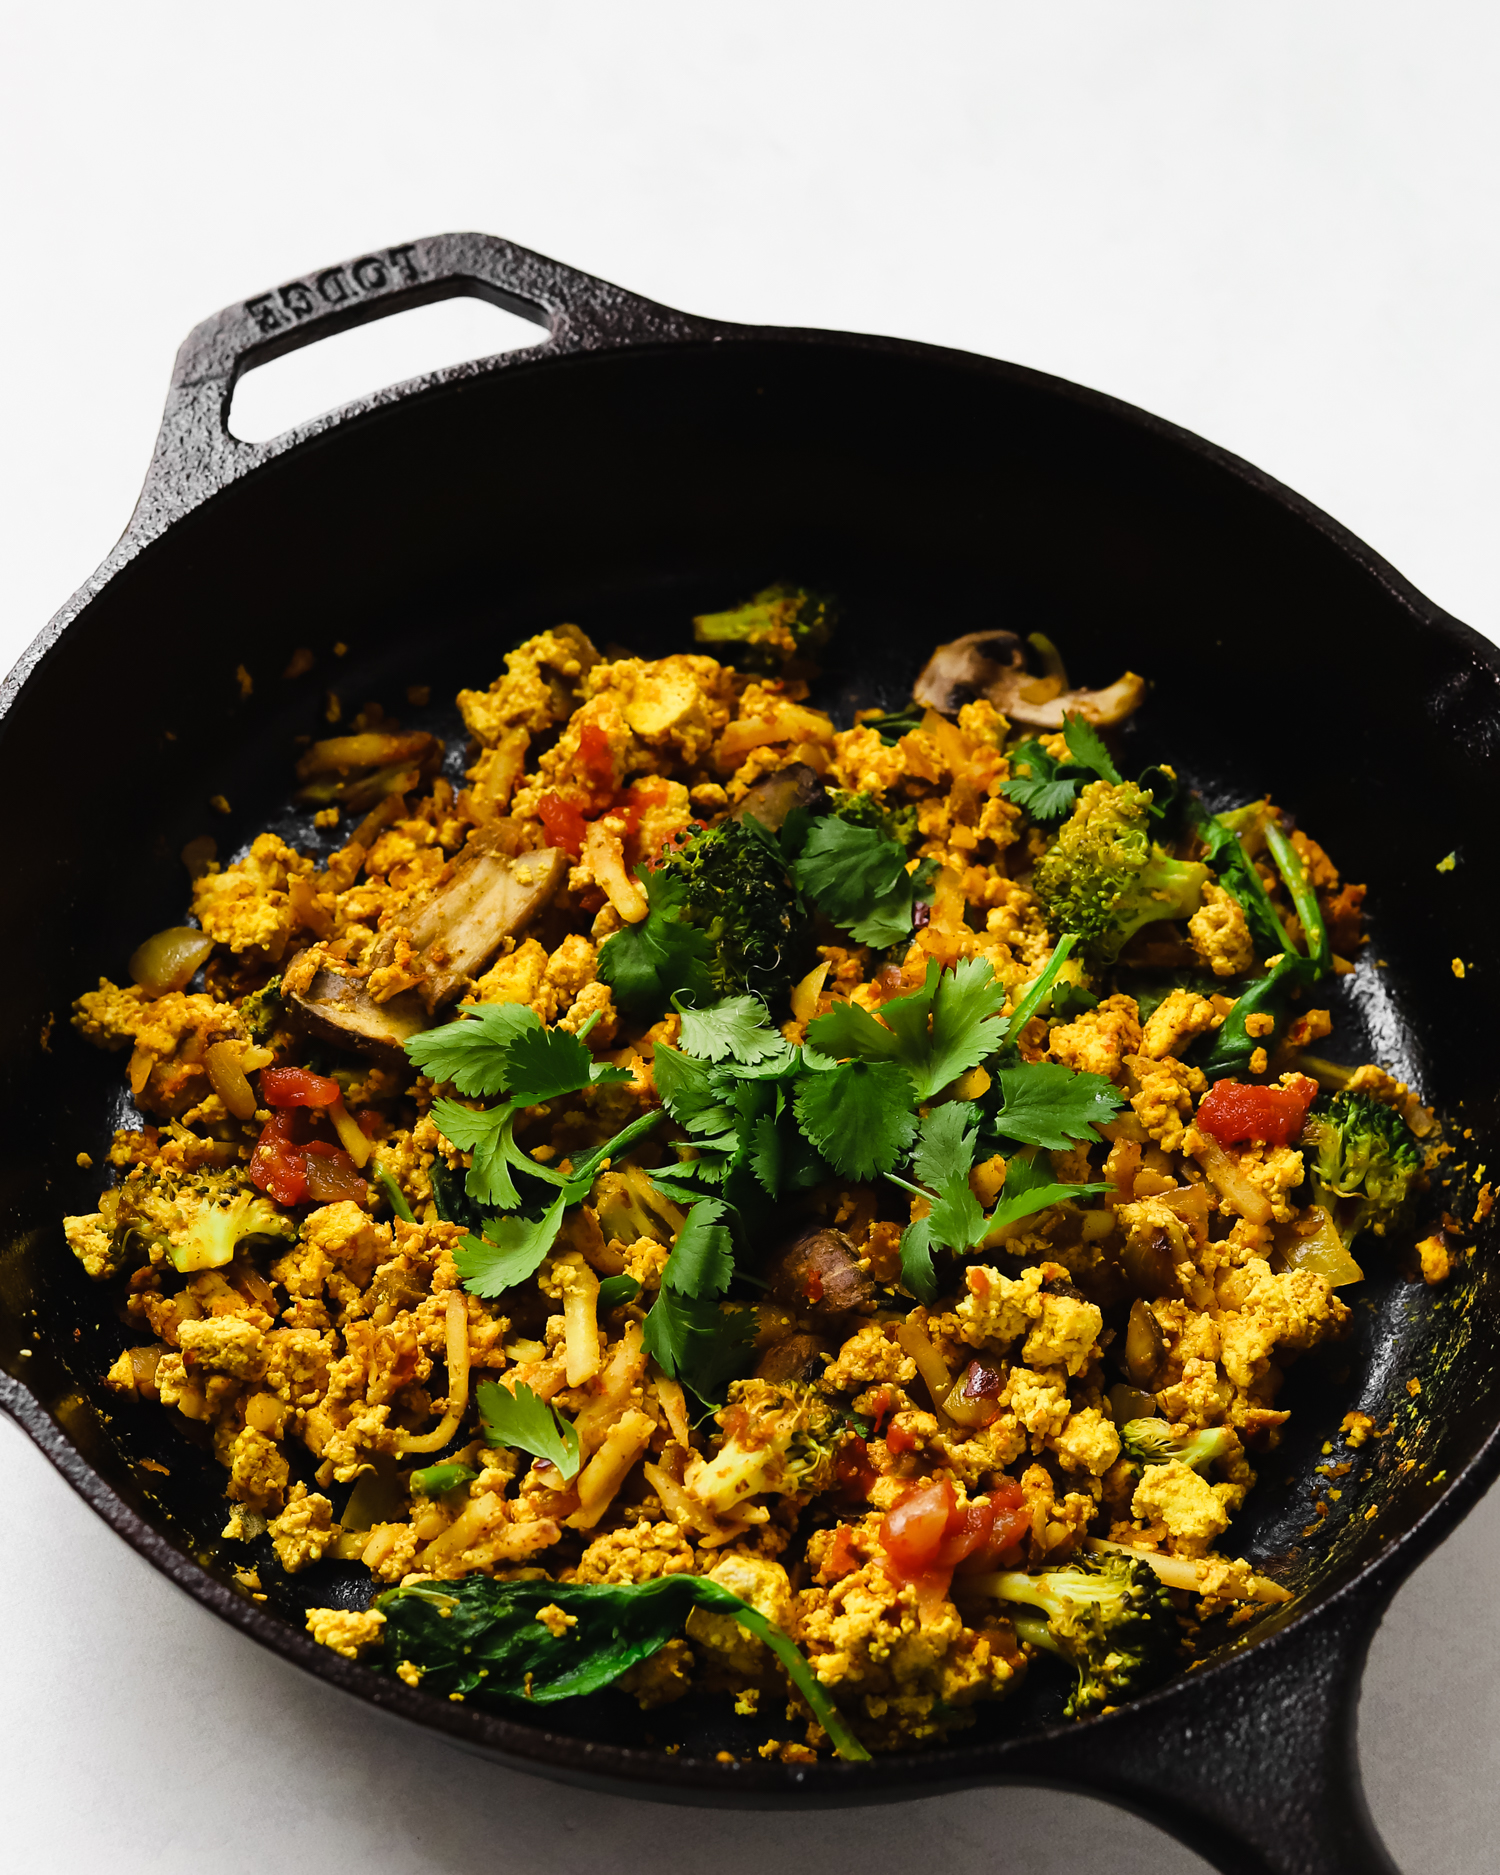 Delicious vegan tofu scramble with vegetables topped with fresh cilantro in a black cast iron skillet.